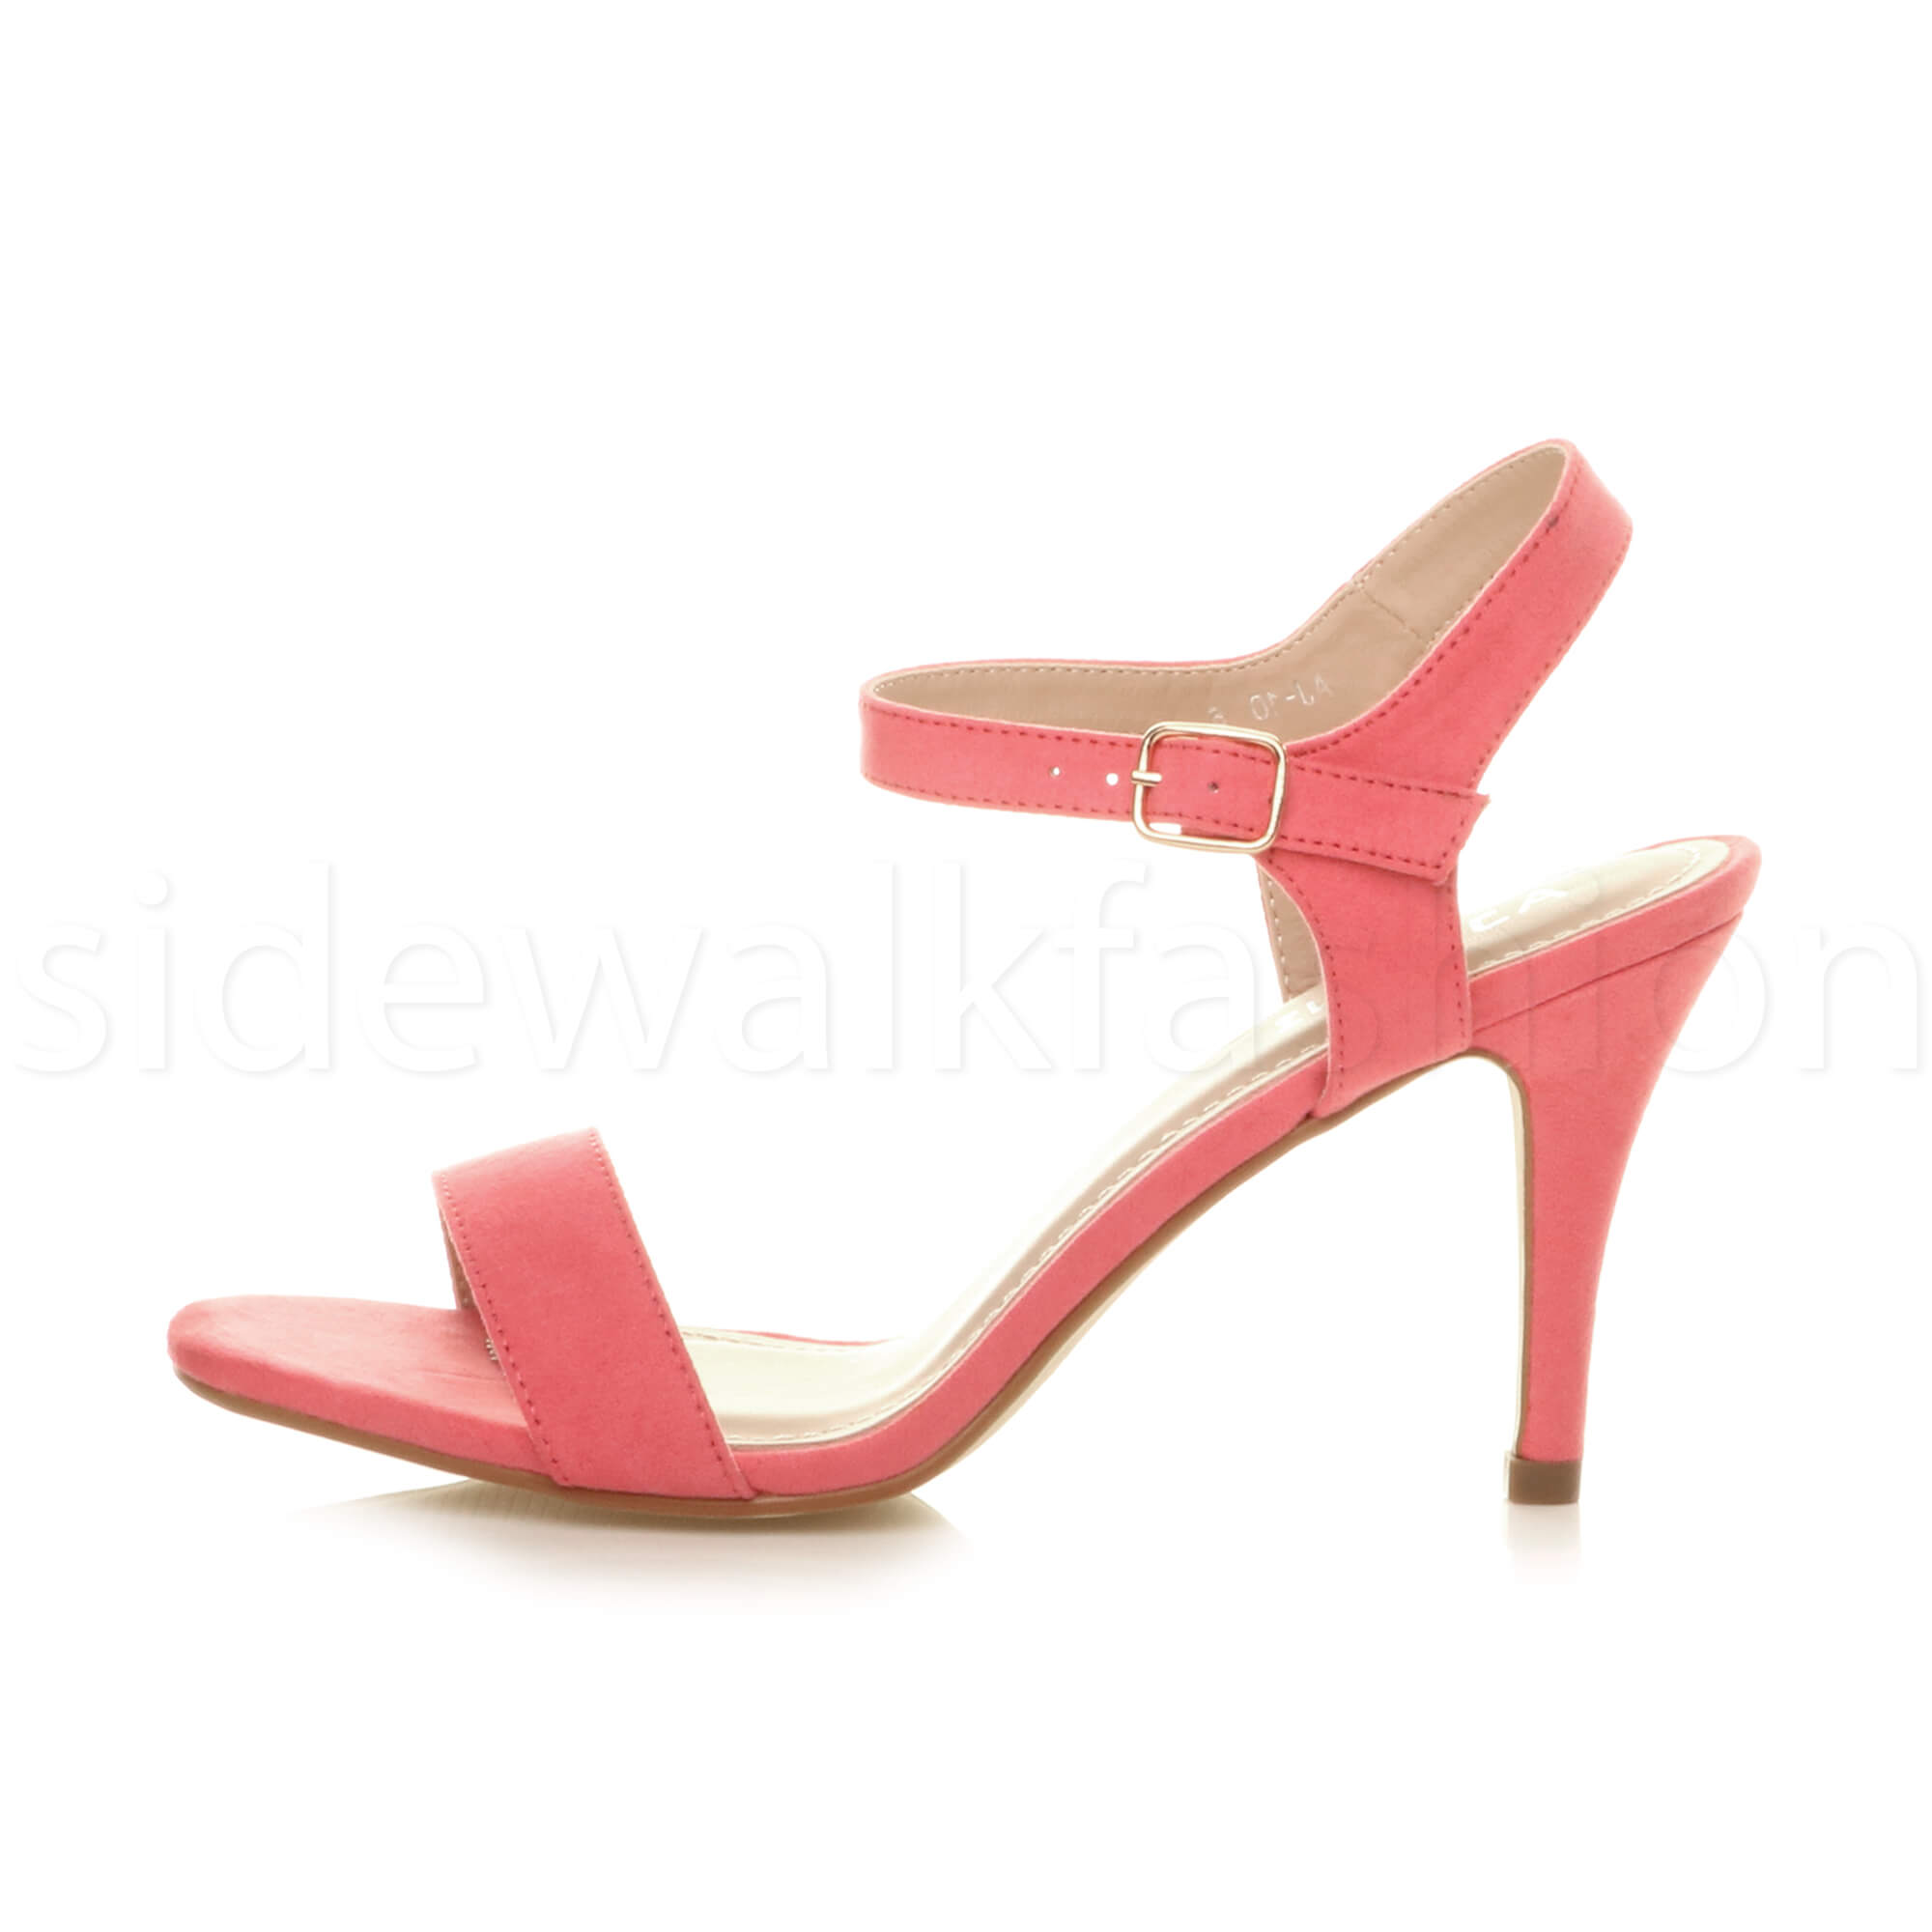 438db952ff94 Womens high heel ladies strappy evening prom simple party shoes ...